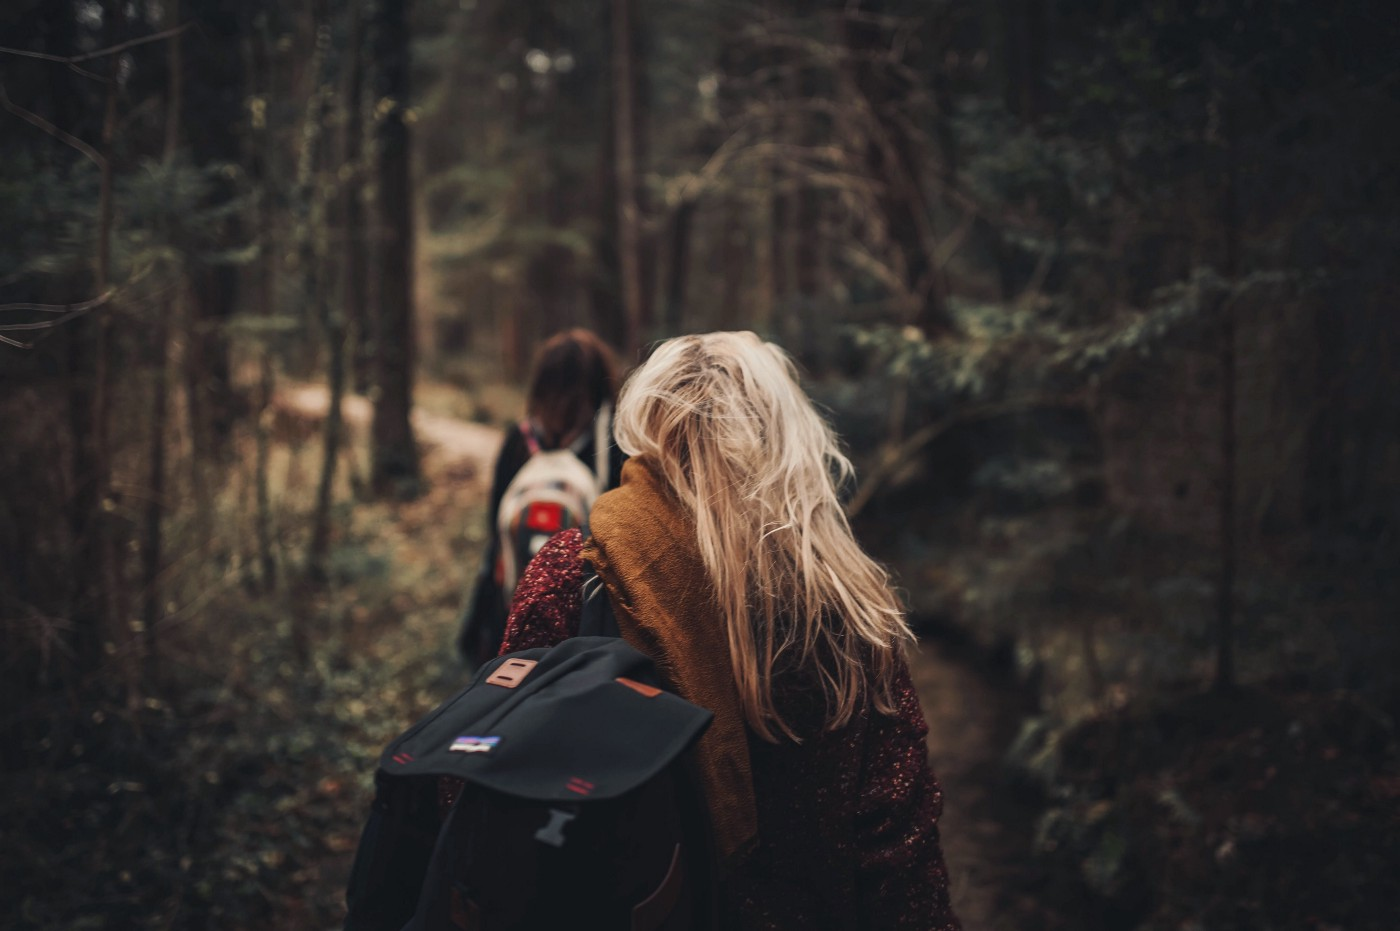 Two girls with backpacks walking through the forest. One girl has blonde hair and wears a brown scarf